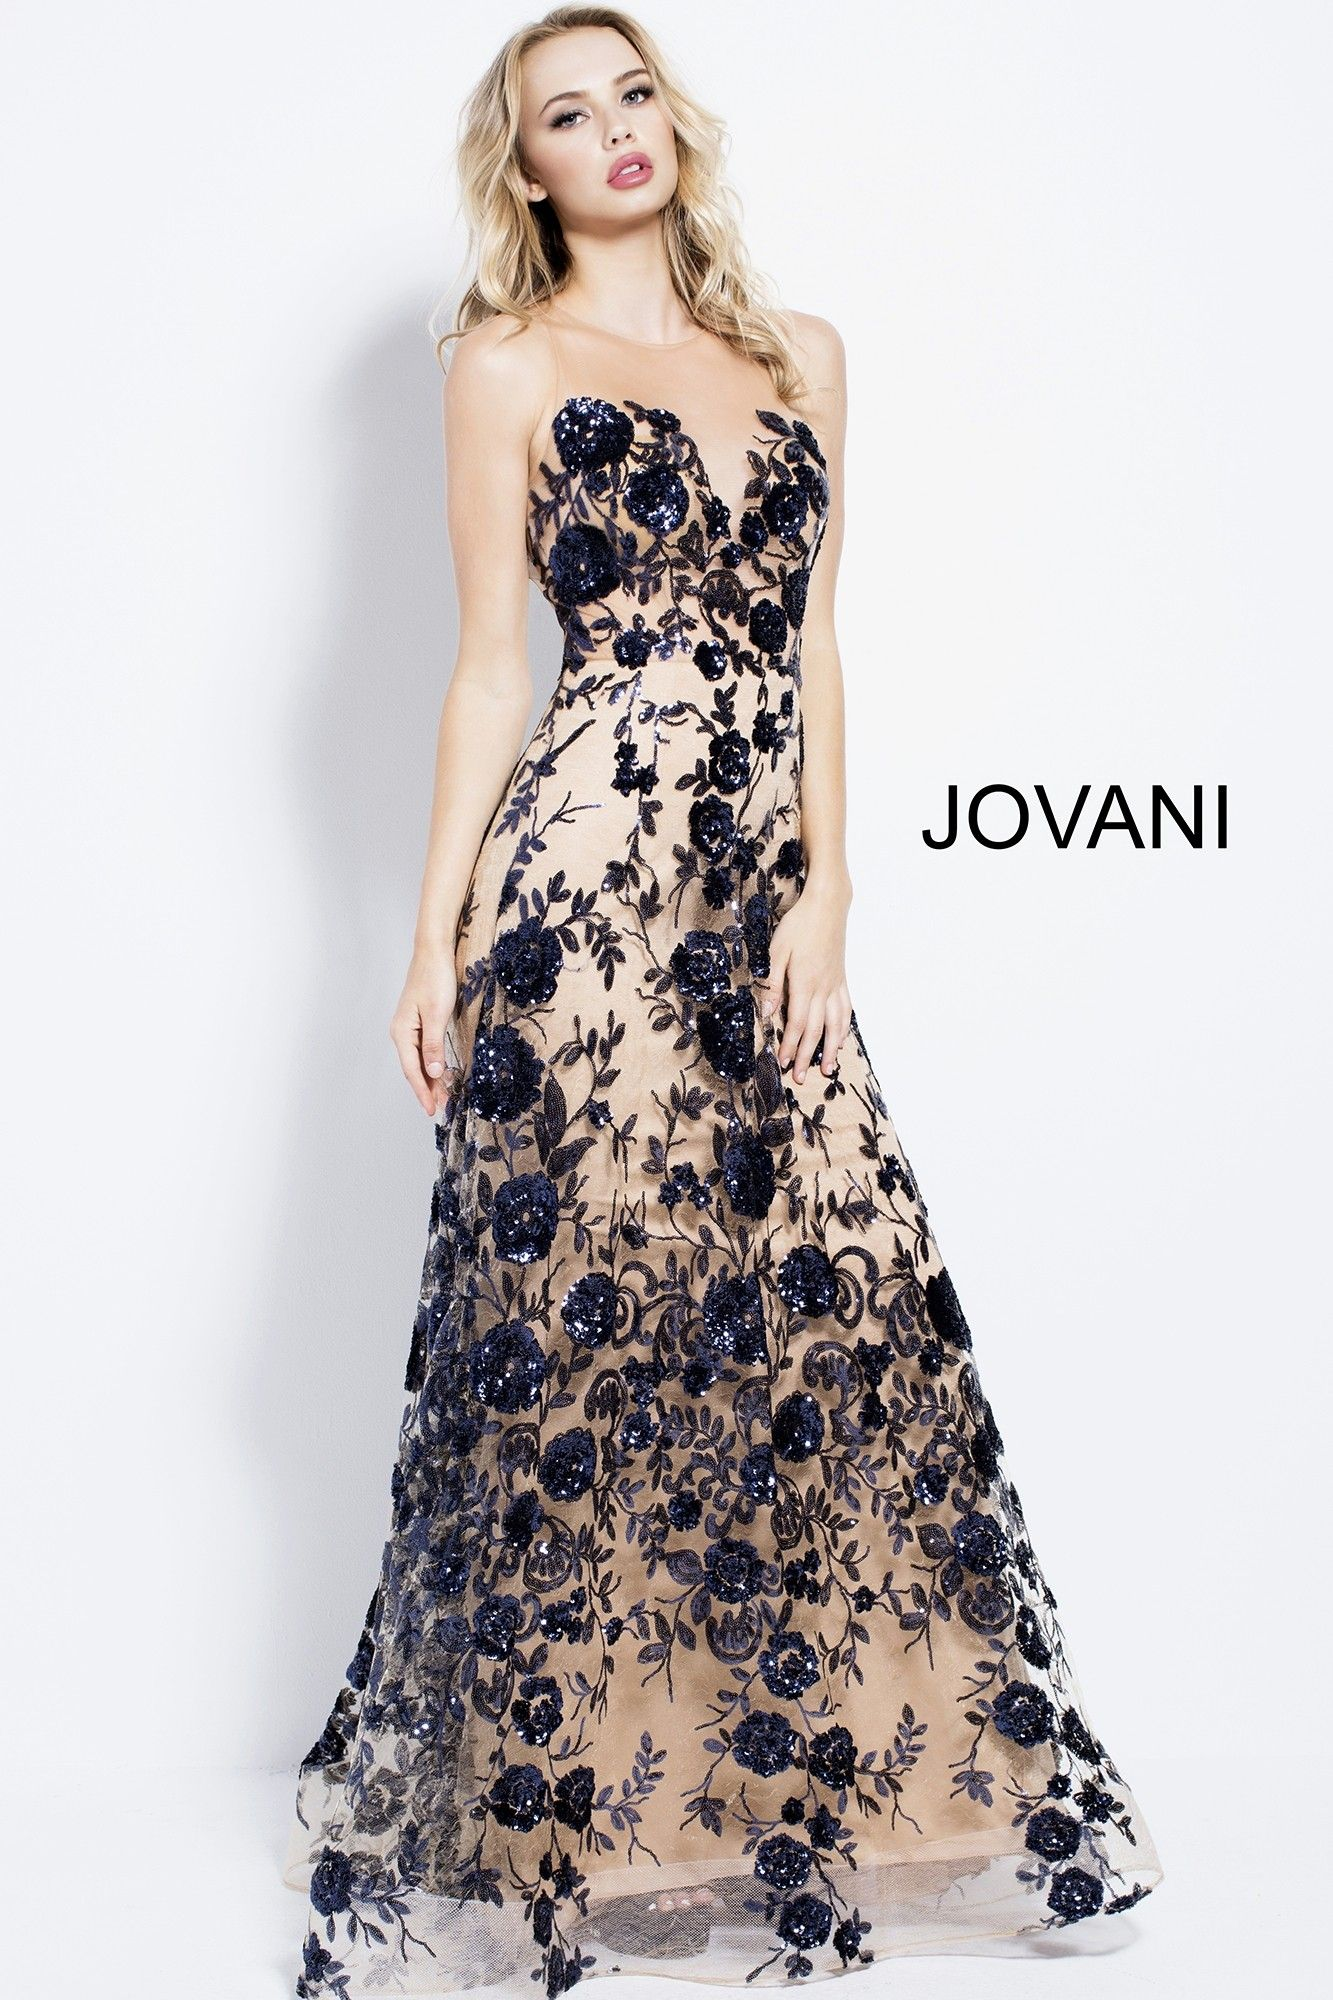 Enter A Glamorous Garden In Jovani 56046 This Enchanting Gown Blossoms With Floral Embroidery And Stunning Jovani Dresses Formal Dresses Long Mesh Prom Dress [ 2000 x 1333 Pixel ]